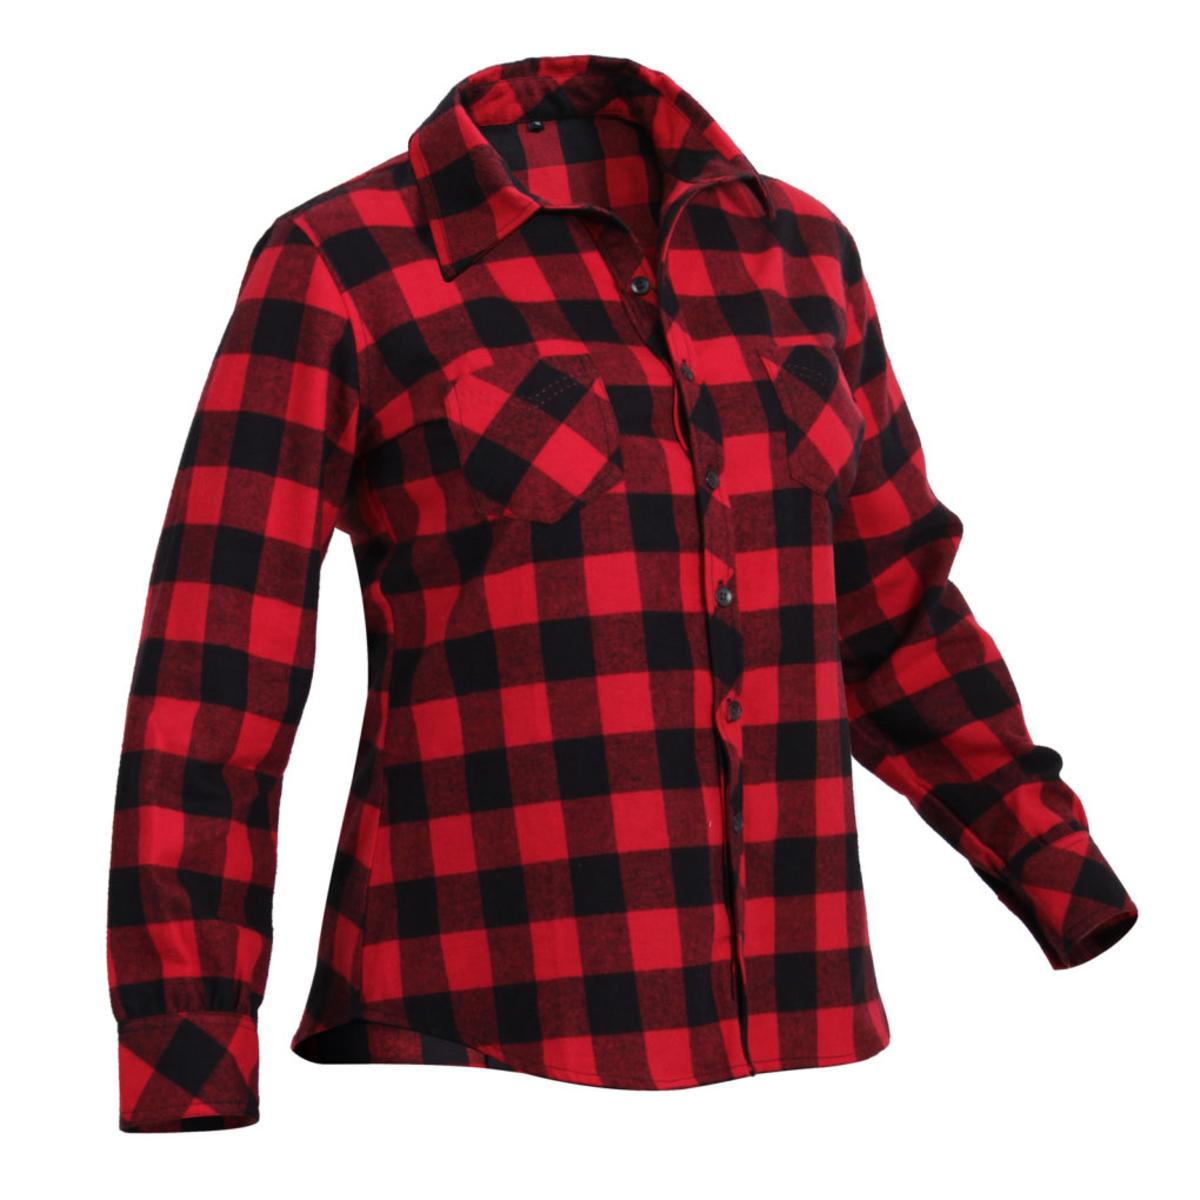 Womens Plaid Flannel Shirt, Red Plaid